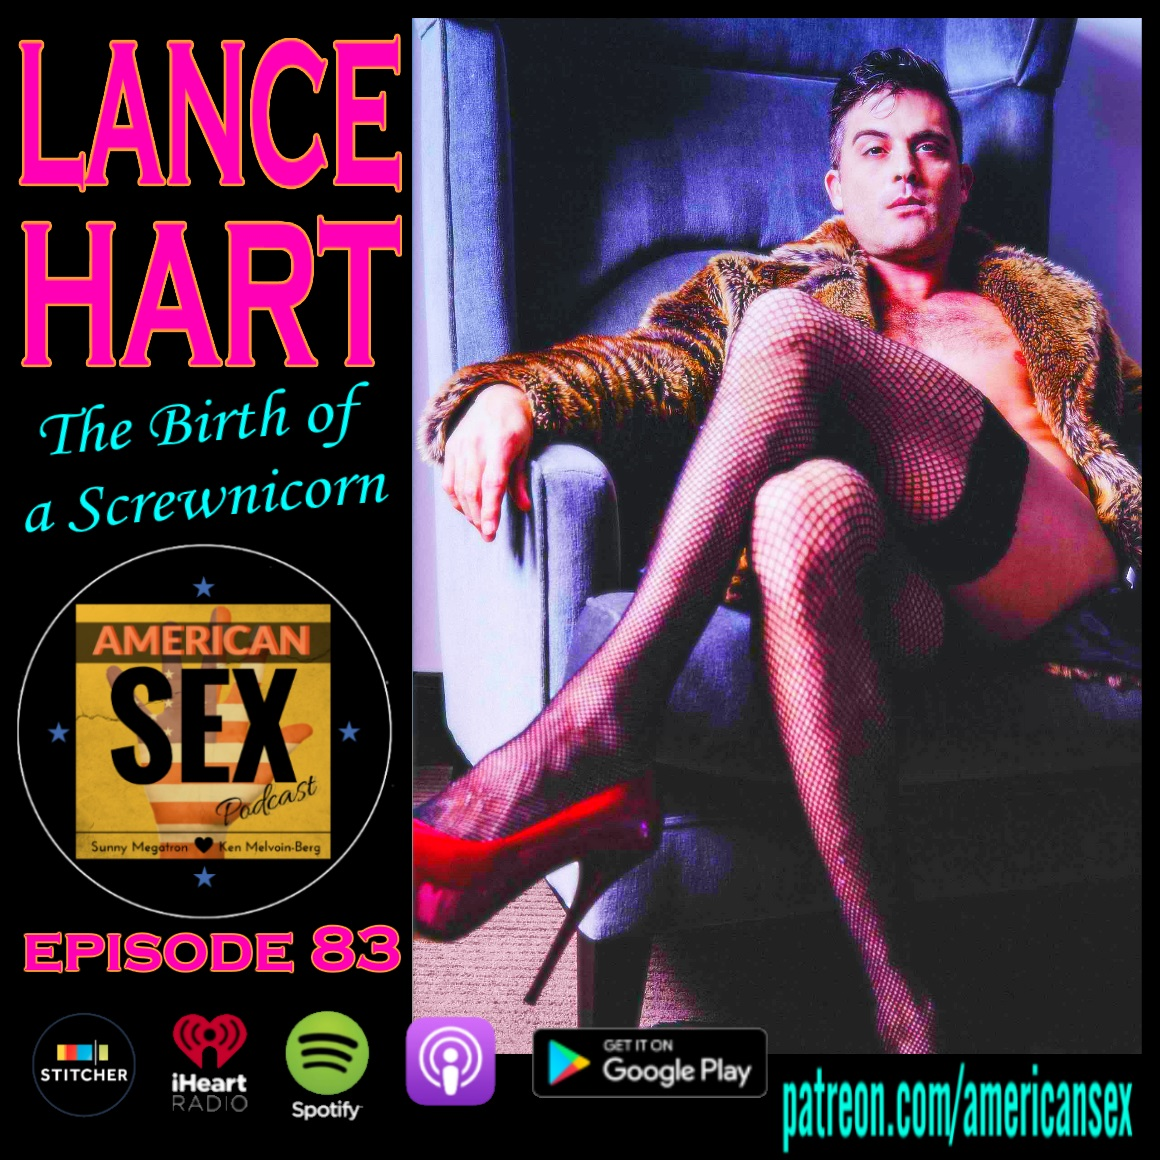 Lance Hart Podcast American Sex